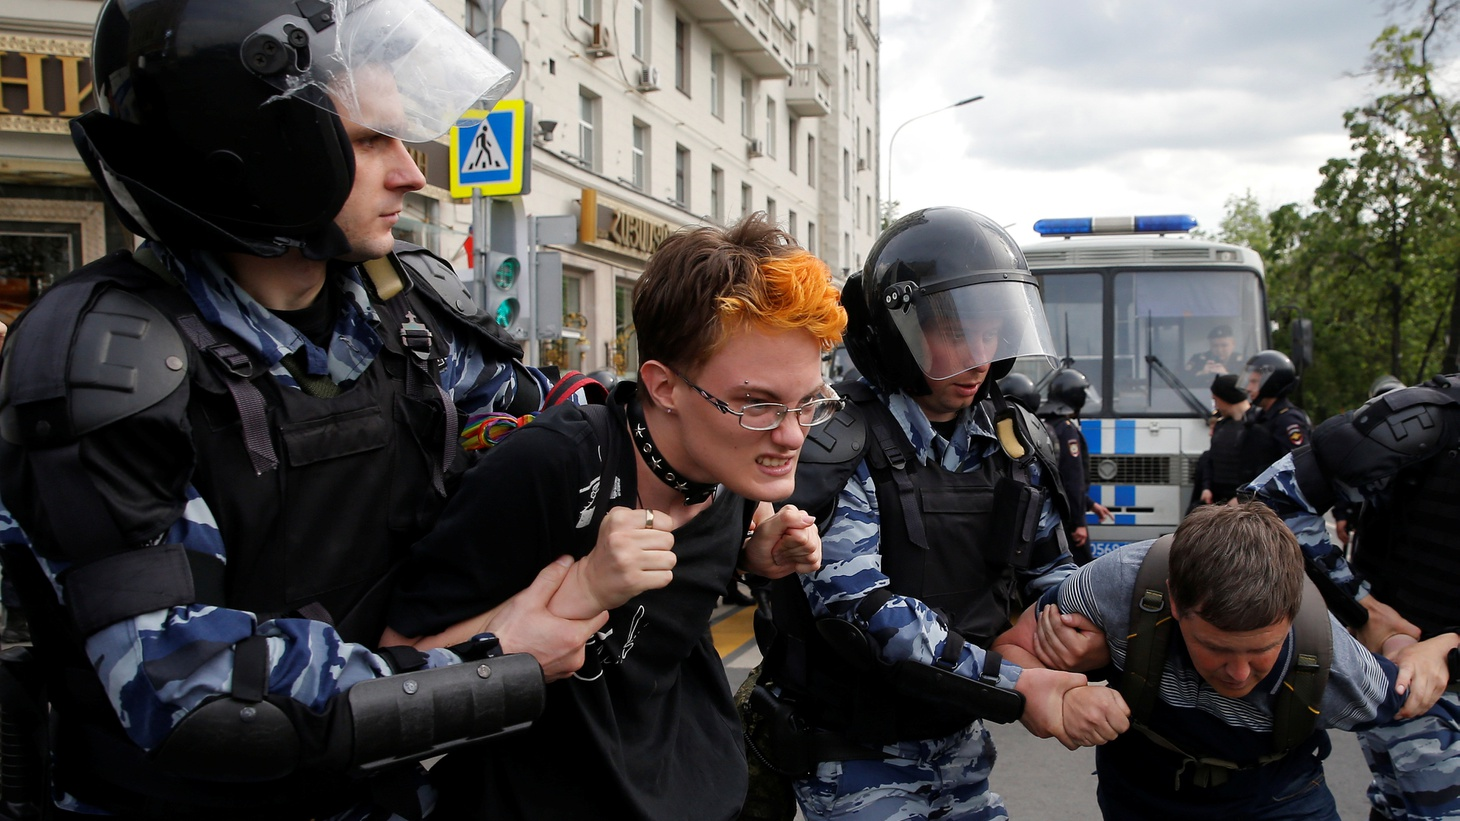 Riot police detain demonstrators during an anti-corruption protest organised by opposition leader Alexei Navalny, on Tverskaya Street in central Moscow, Russia, June 12, 2017 Photo by Maxim Shemetov/Reuters   This could have been one of Russia's most extensive days of political protest in recent history. Police in 200 cities were out in force…